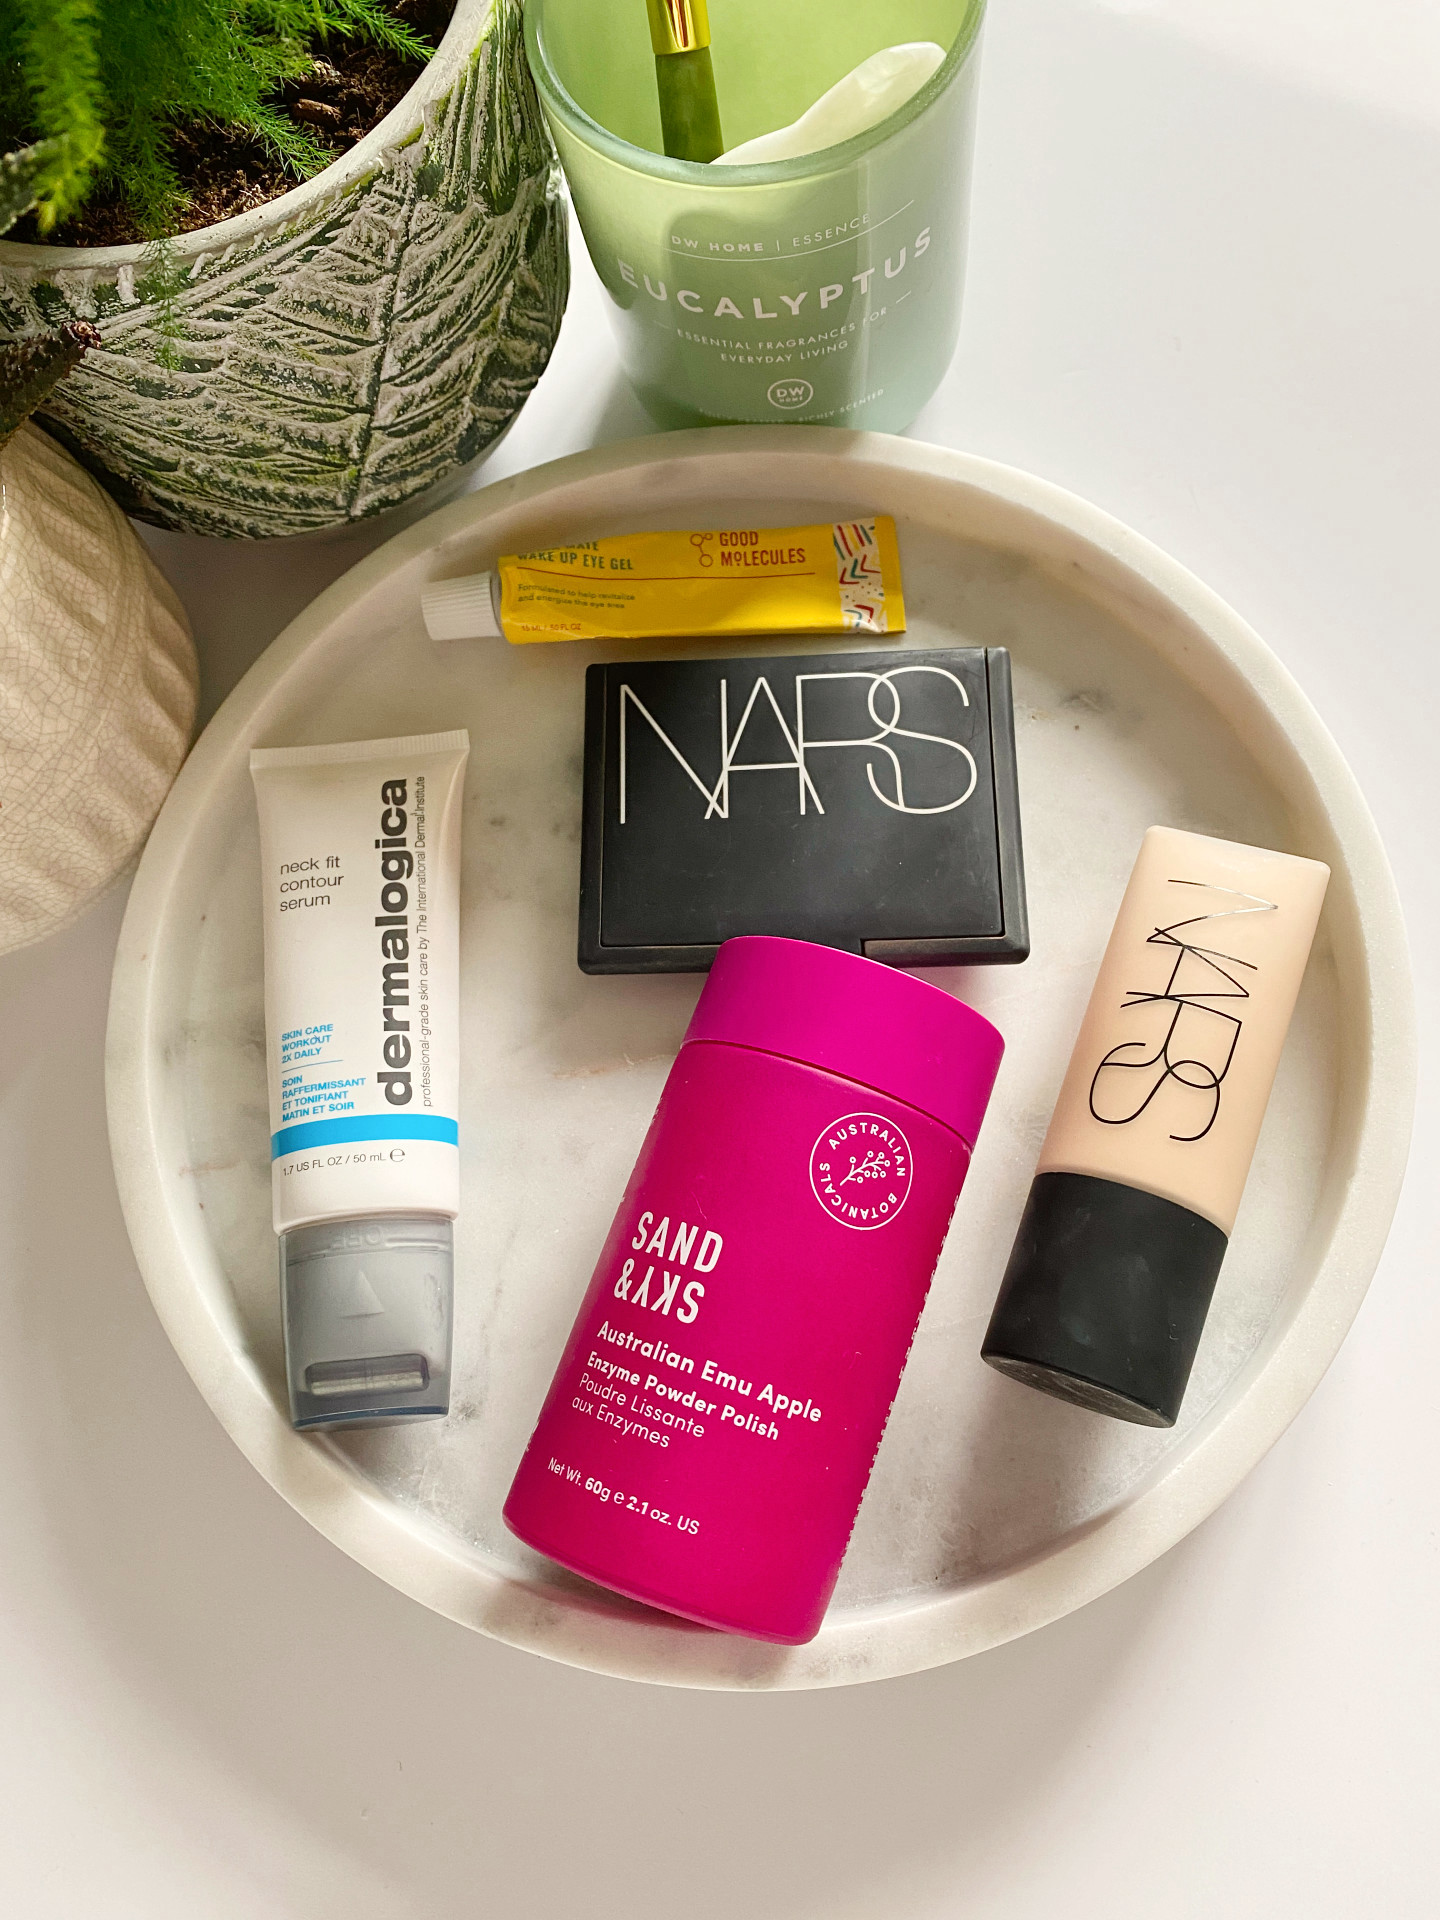 beauty favourites dermalogica nars good molecules sand&sky